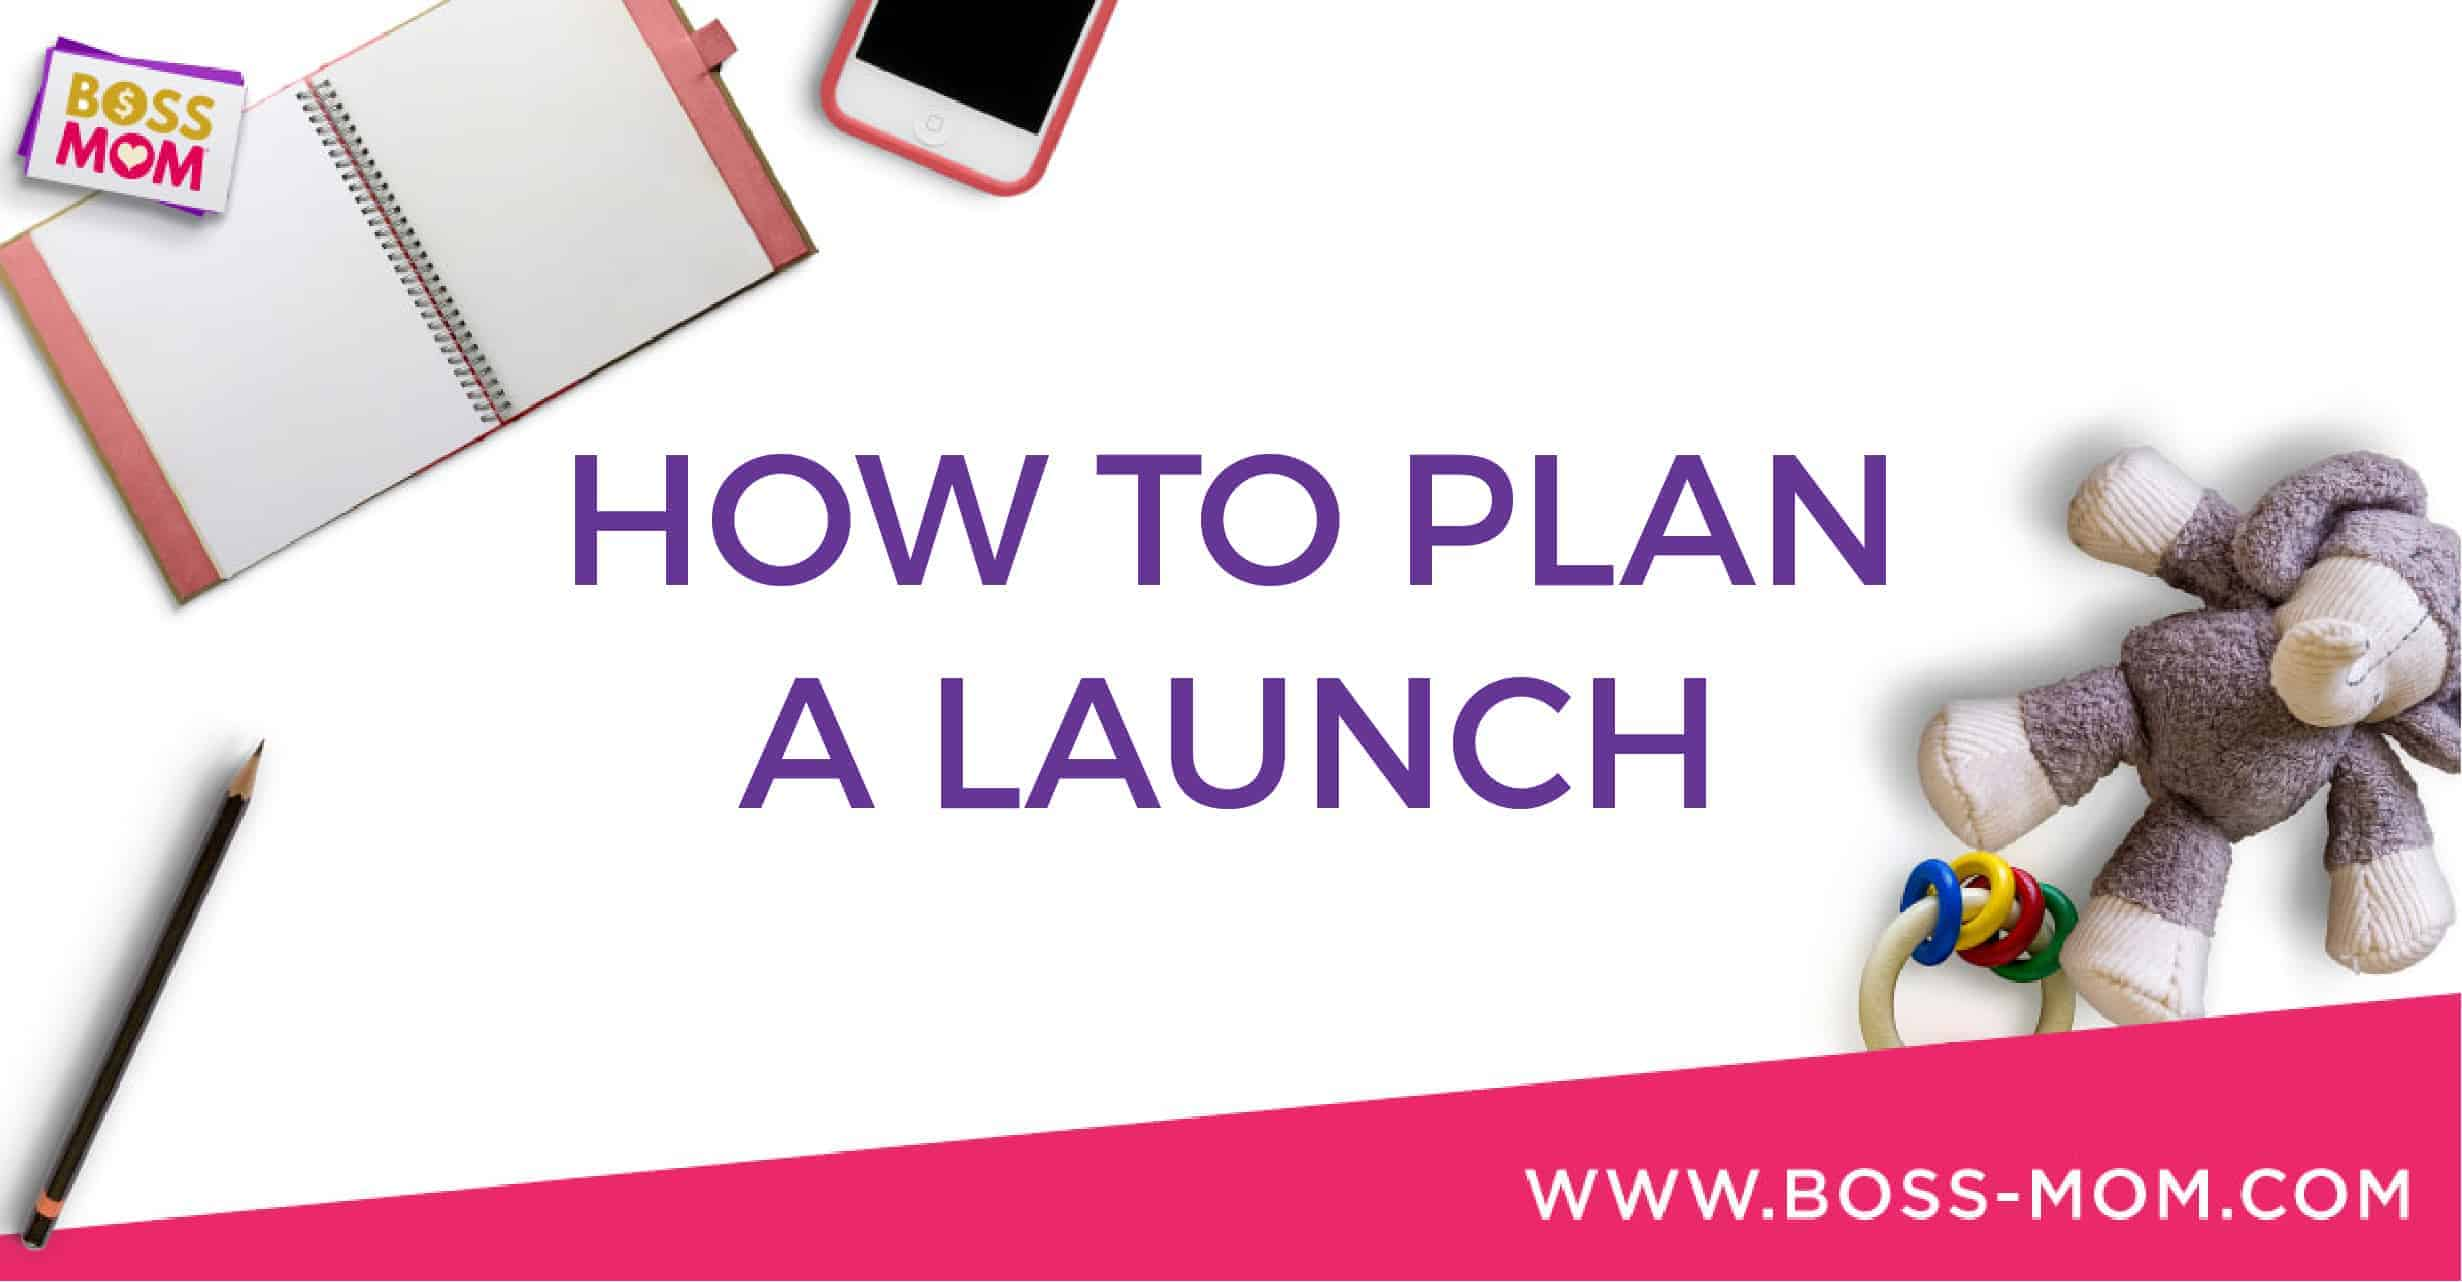 Episode 194: How to Plan a Launch with Dana & NJ